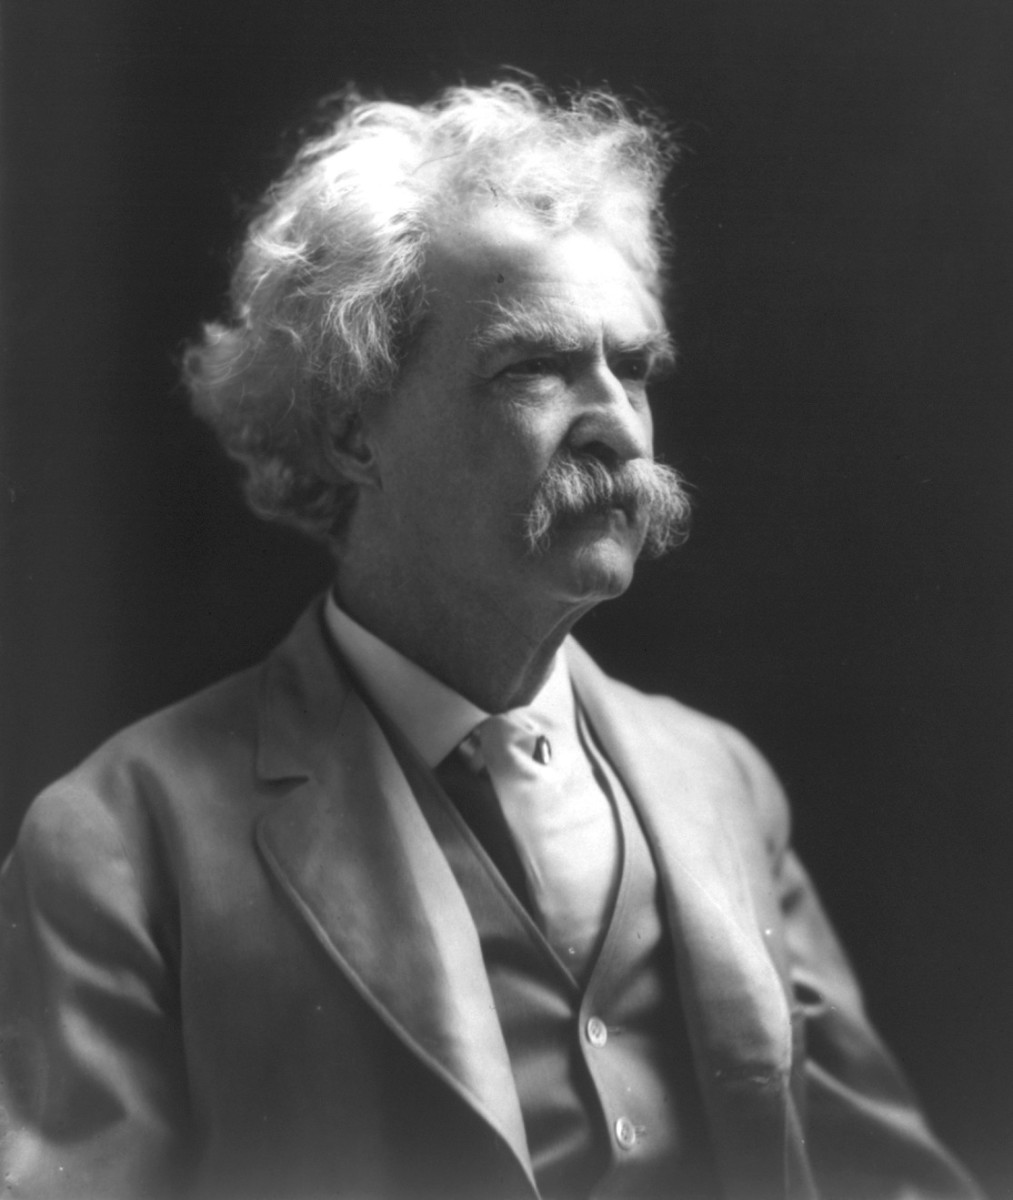 Mark Twain was angry about the Philippine-American War of 1899.